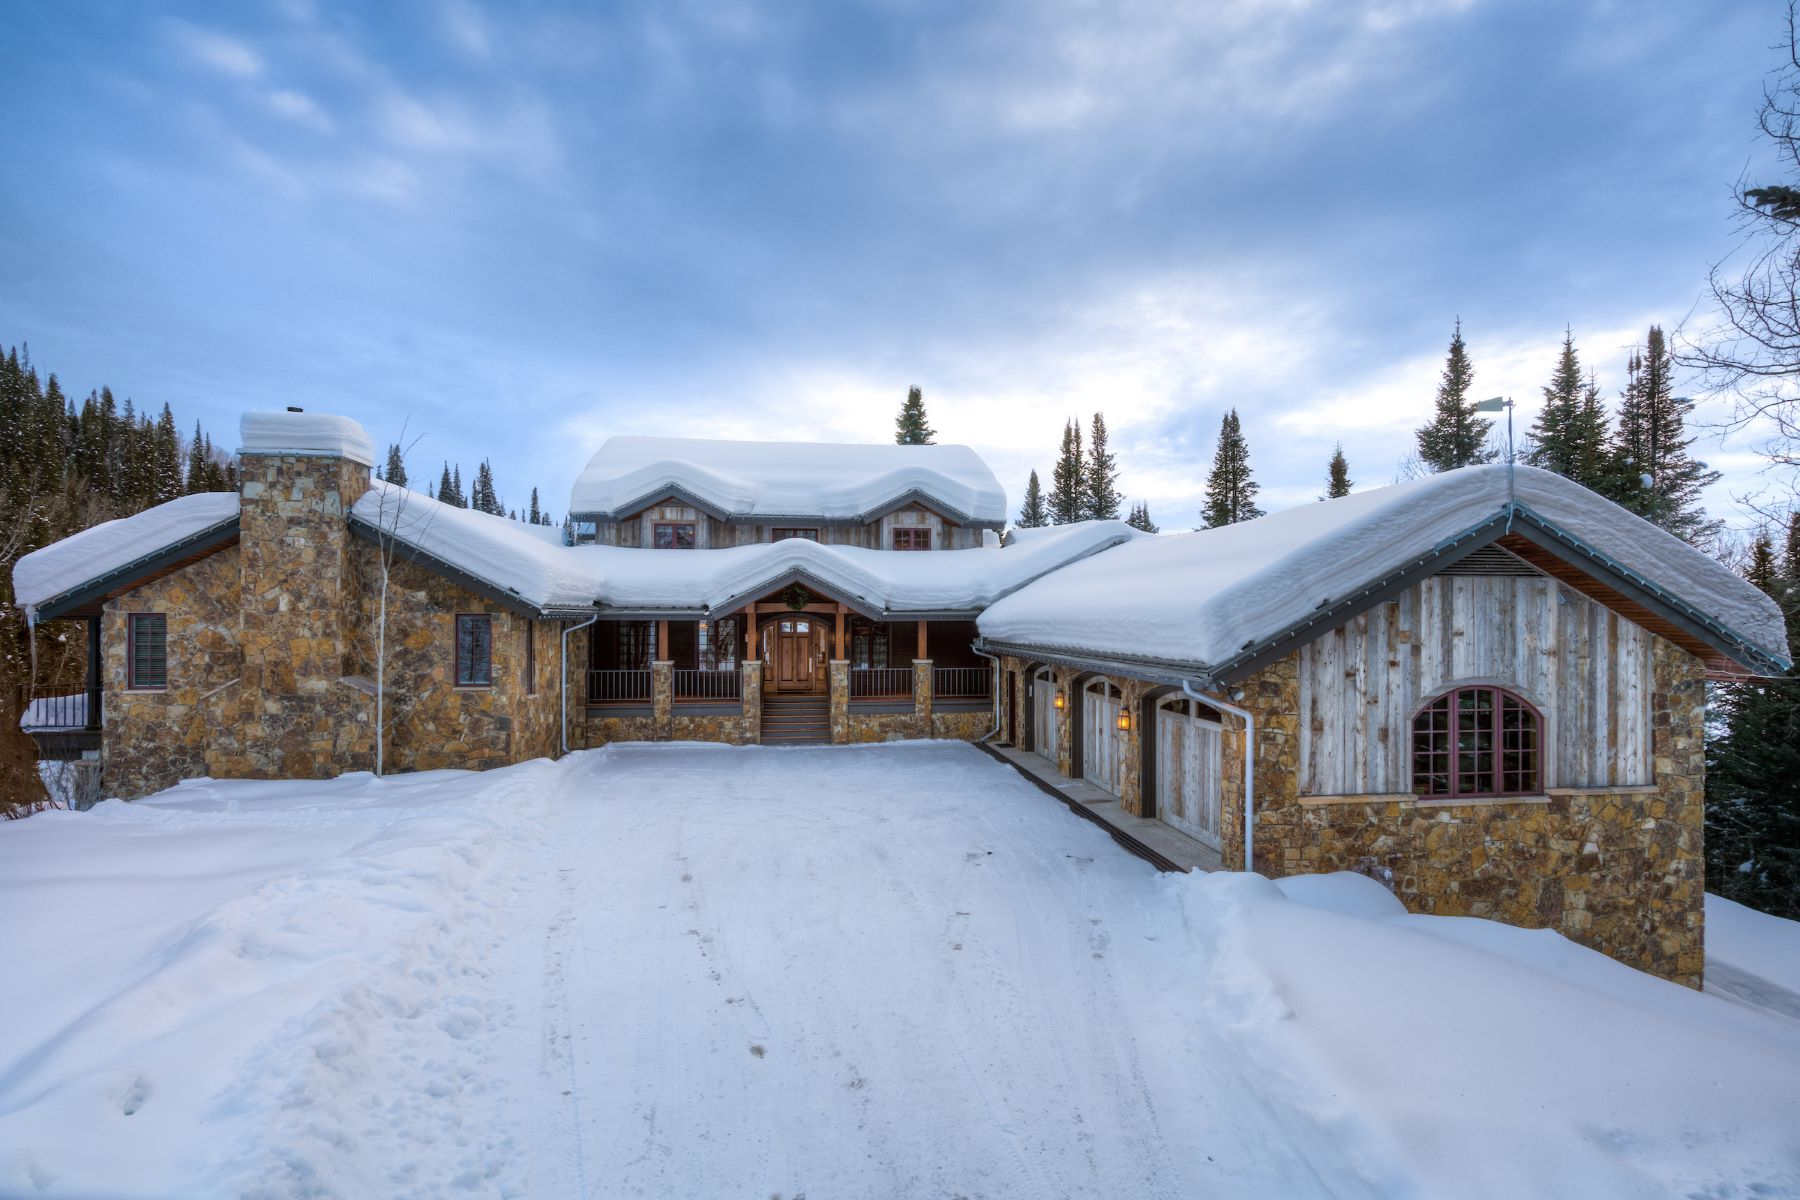 Single Family Home for Sale at Strawberry Park Jewel 32375 County Road 38 Steamboat Springs, Colorado 80487 United States